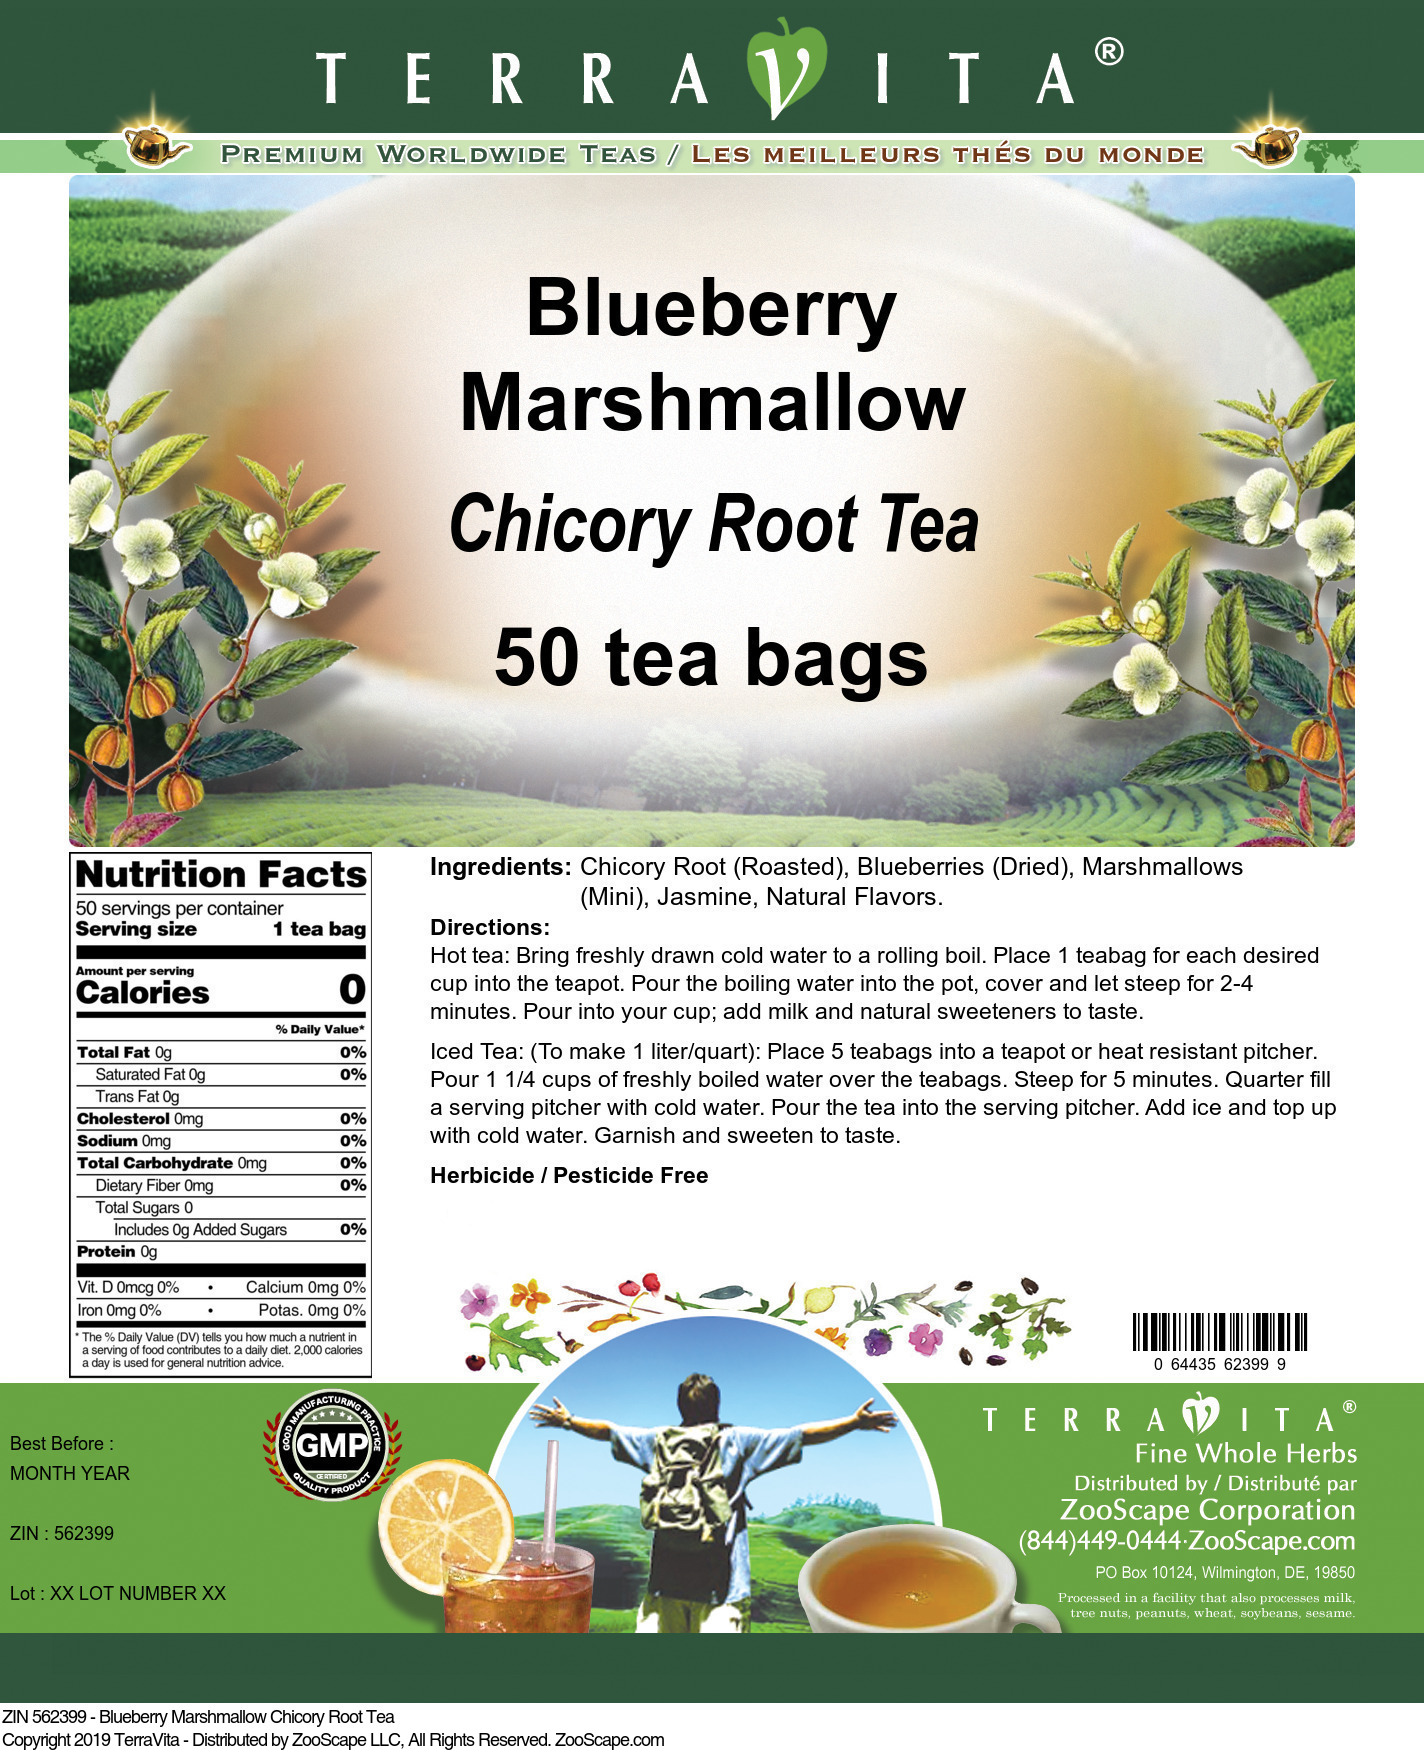 Blueberry Marshmallow Chicory Root